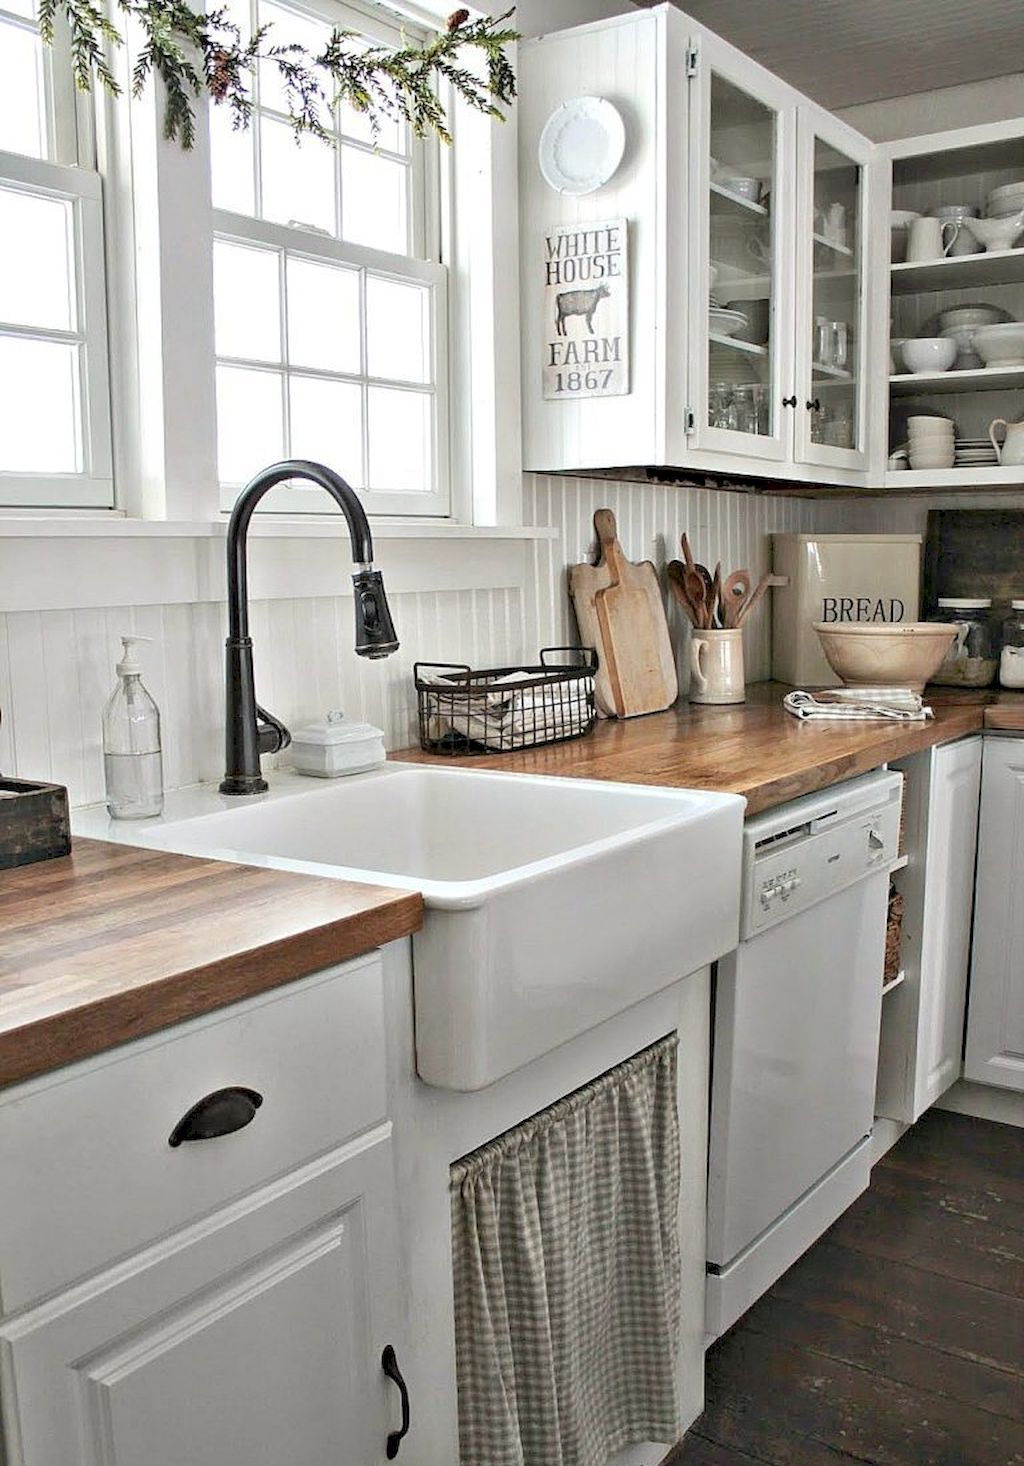 nice 90 rustic kitchen cabinets farmhouse style ideas https livingmarch com farmhouse on kitchen cabinets farmhouse style id=33382